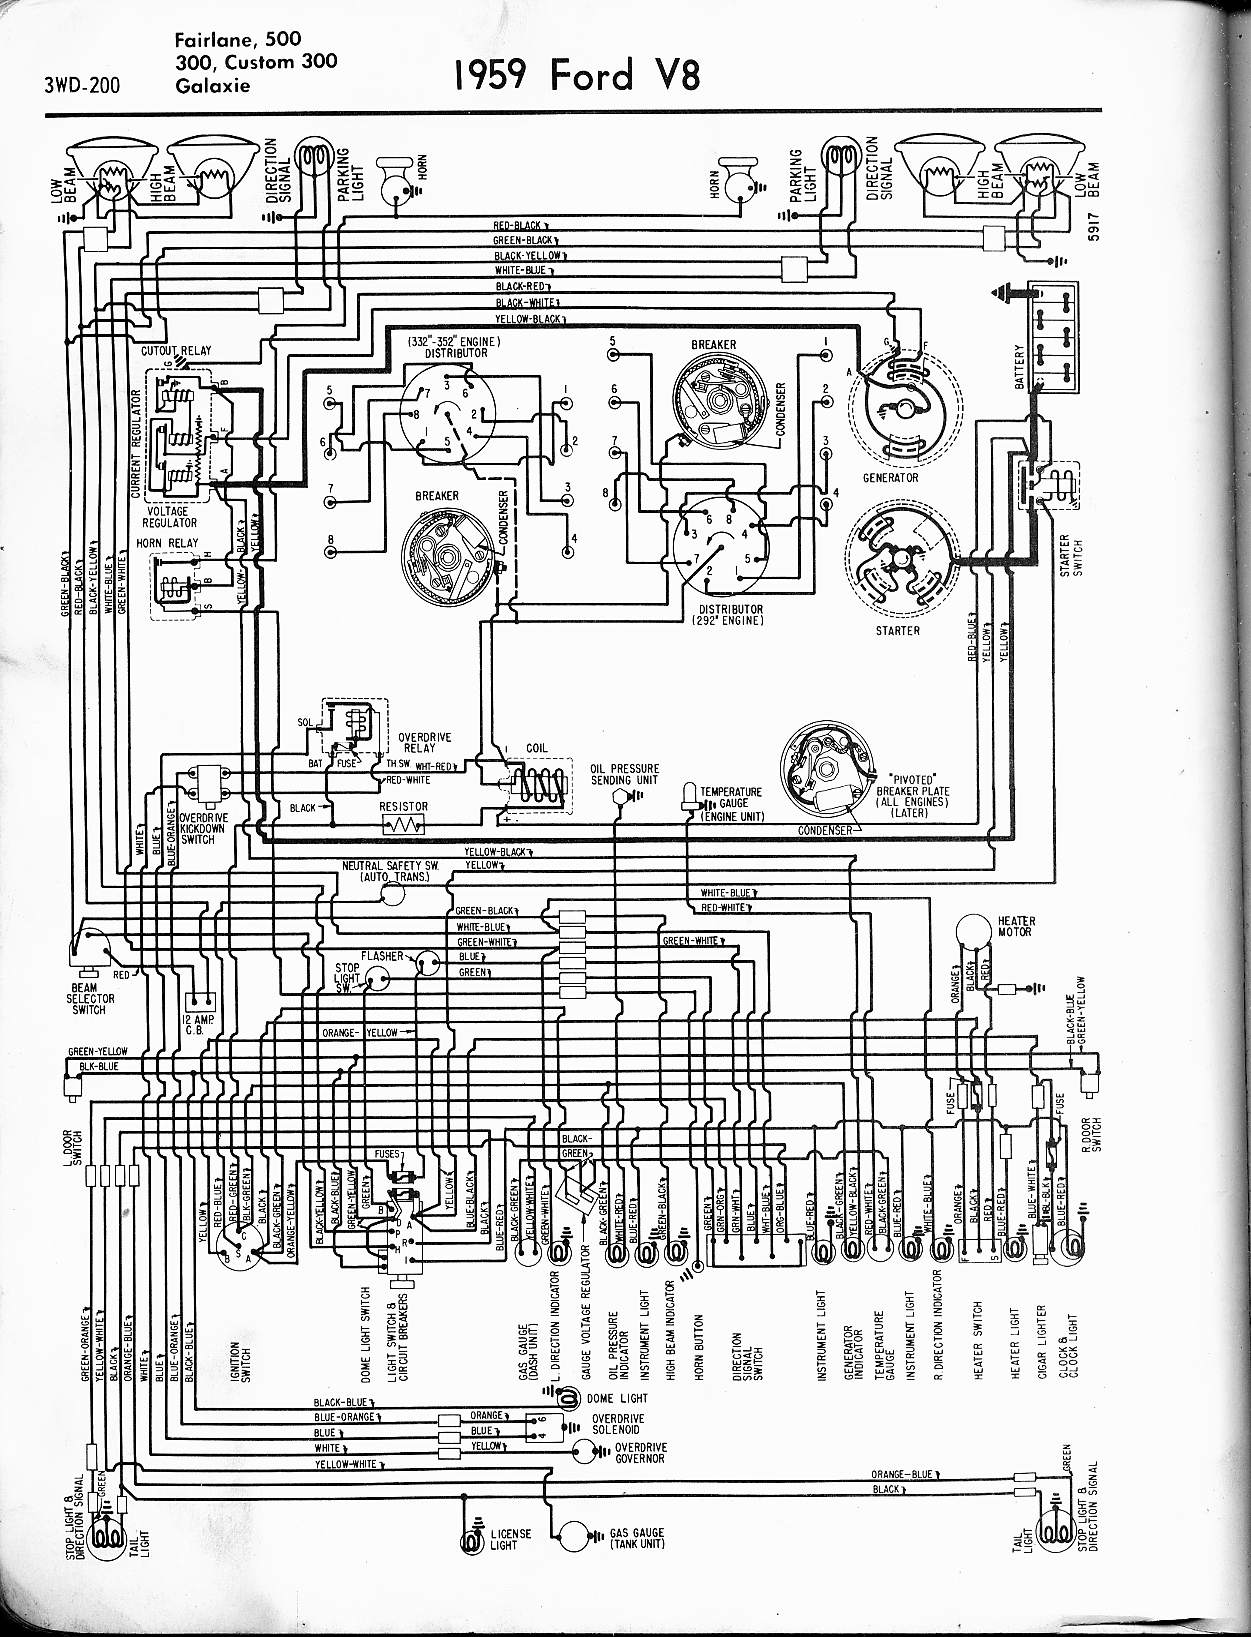 MWire5765 200 57 65 ford wiring diagrams ford wiring schematics at honlapkeszites.co